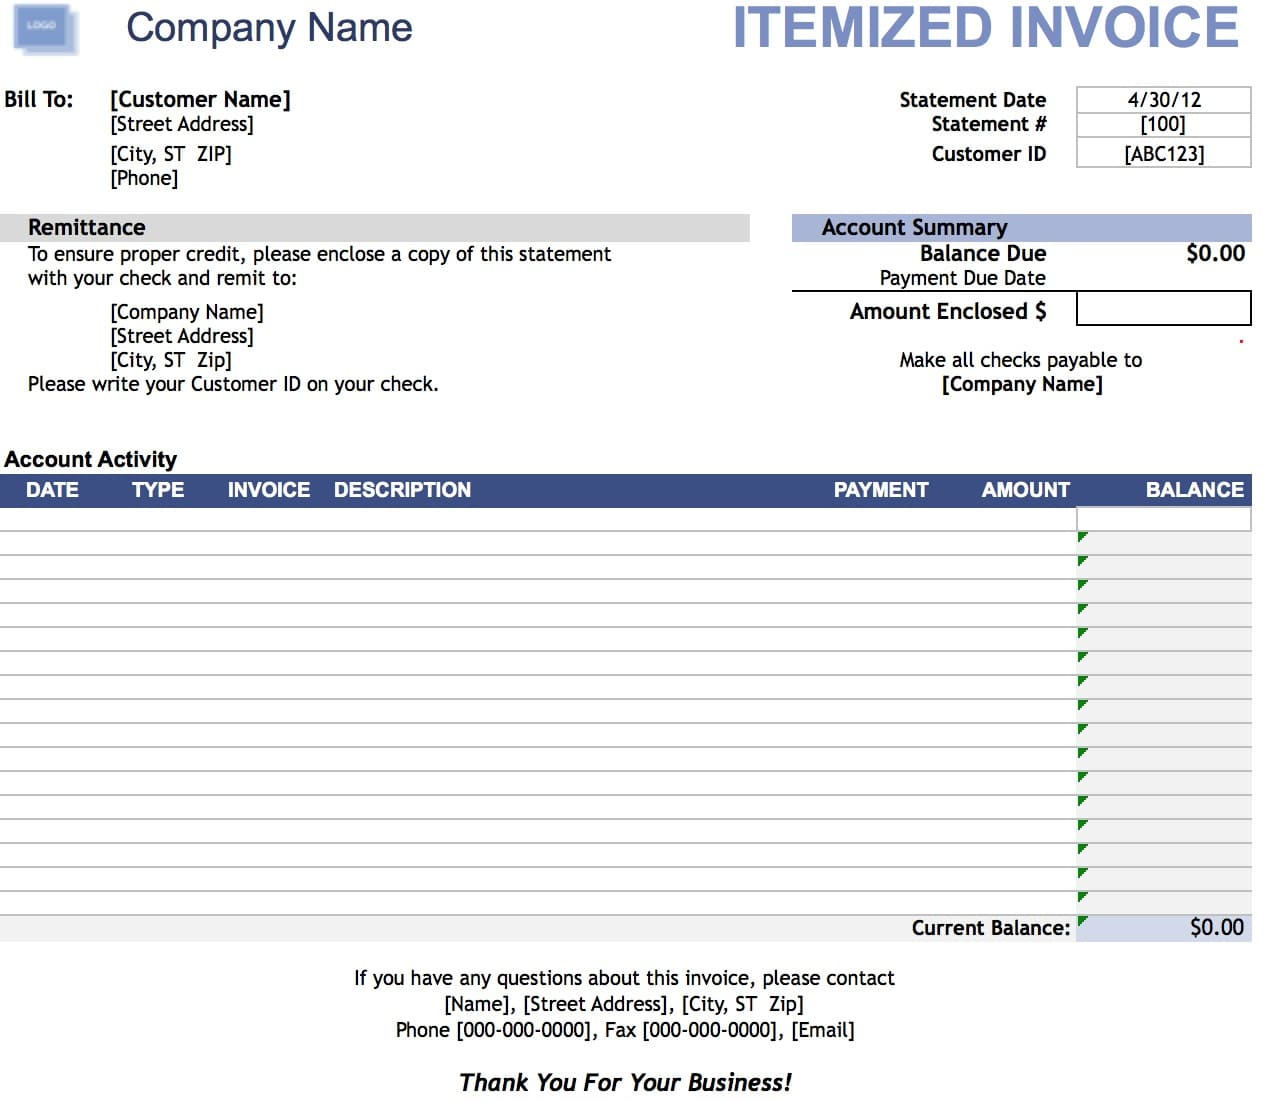 Itemized Invoice Pertaminico - Create a fake invoice for service business